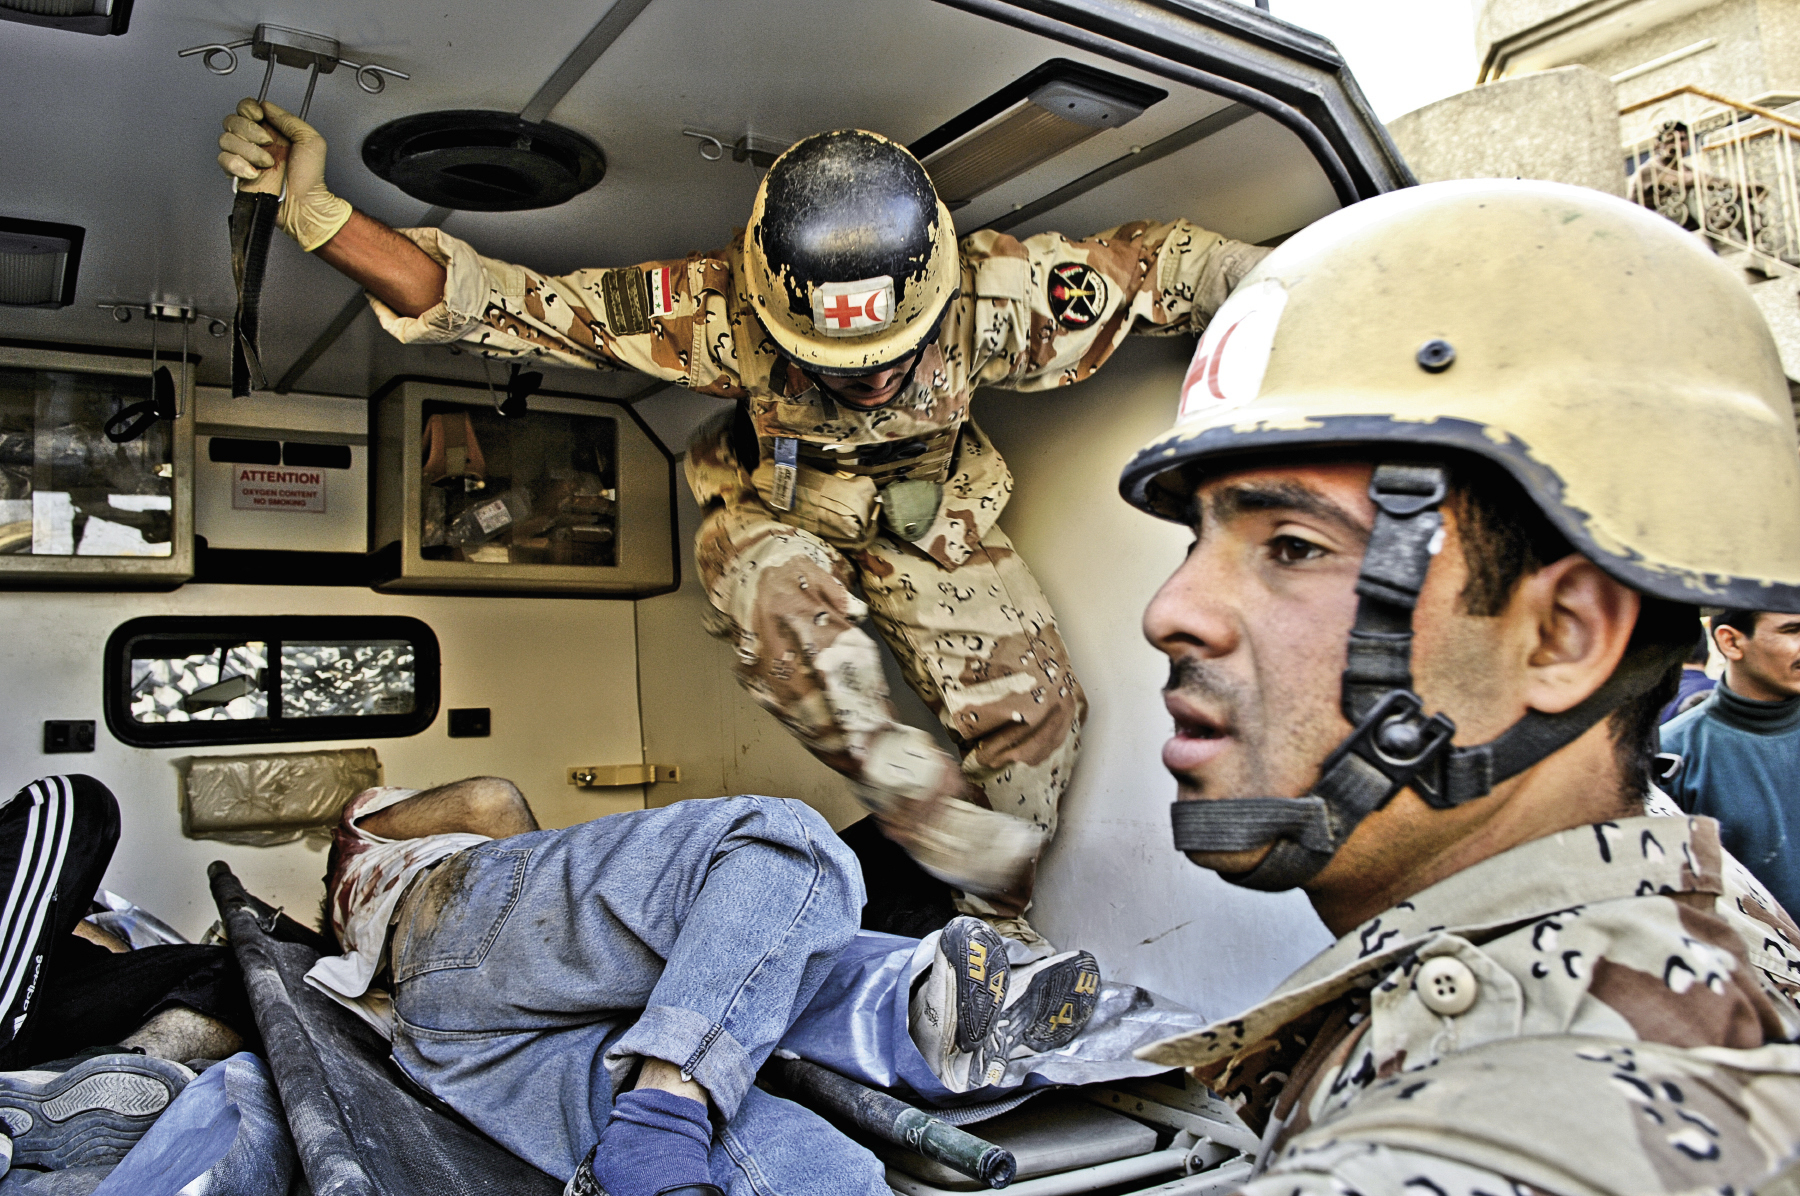 March 29, 2007: Iraqi Army soldiers load the bodies of deceased enemy forces into a waiting ambulance in Baqubah, Iraq.